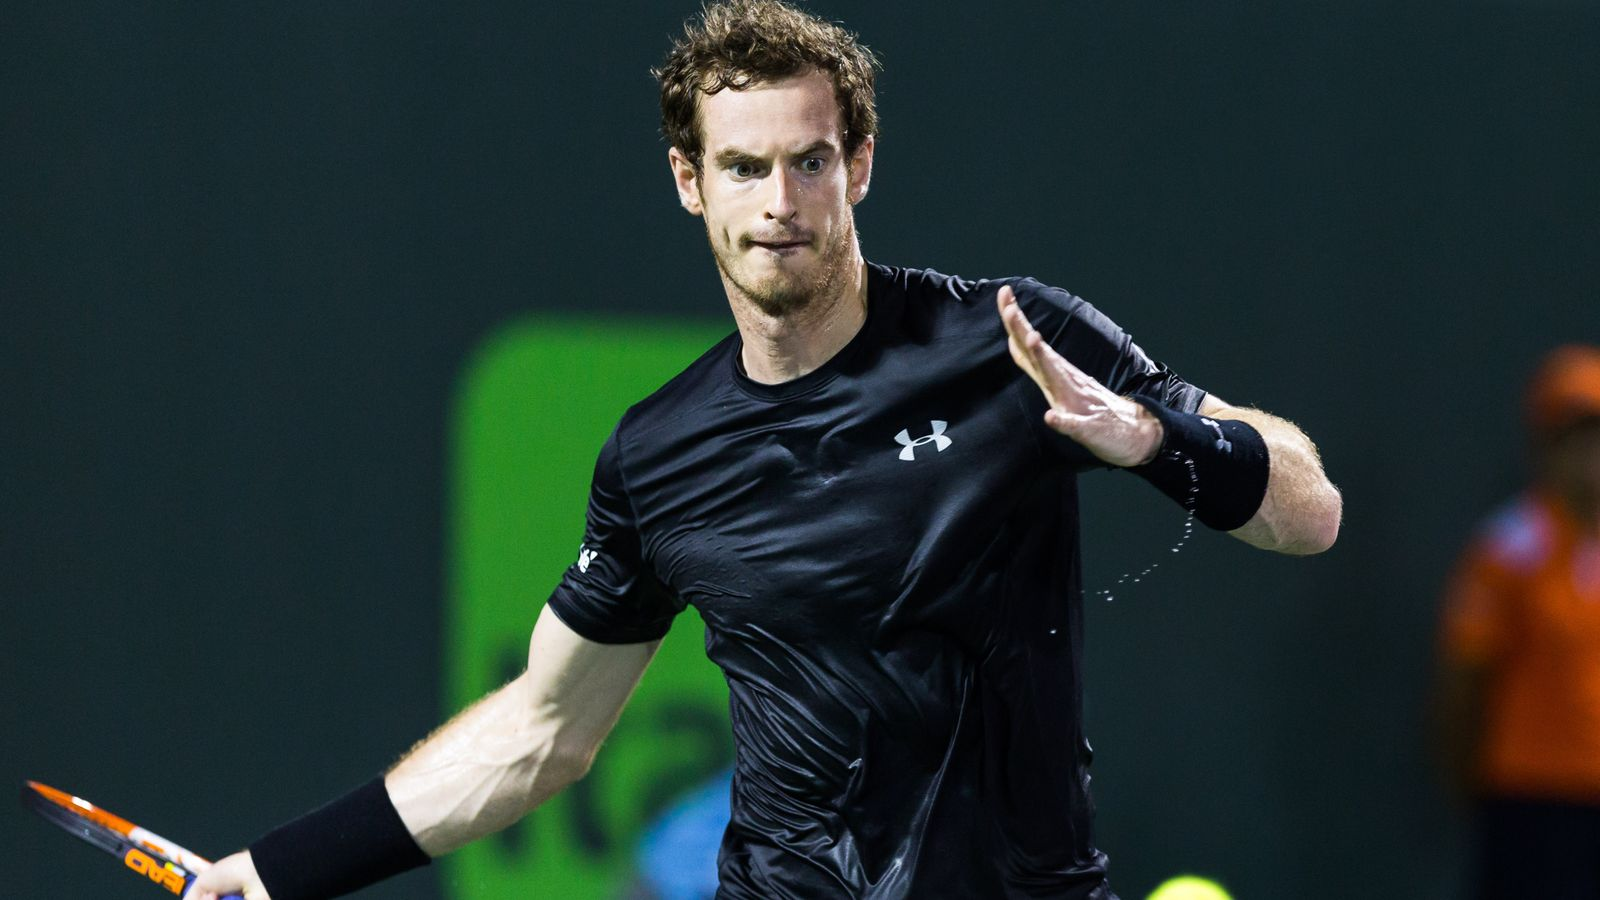 Andy Murray handed wildcard into Western & Southern Open